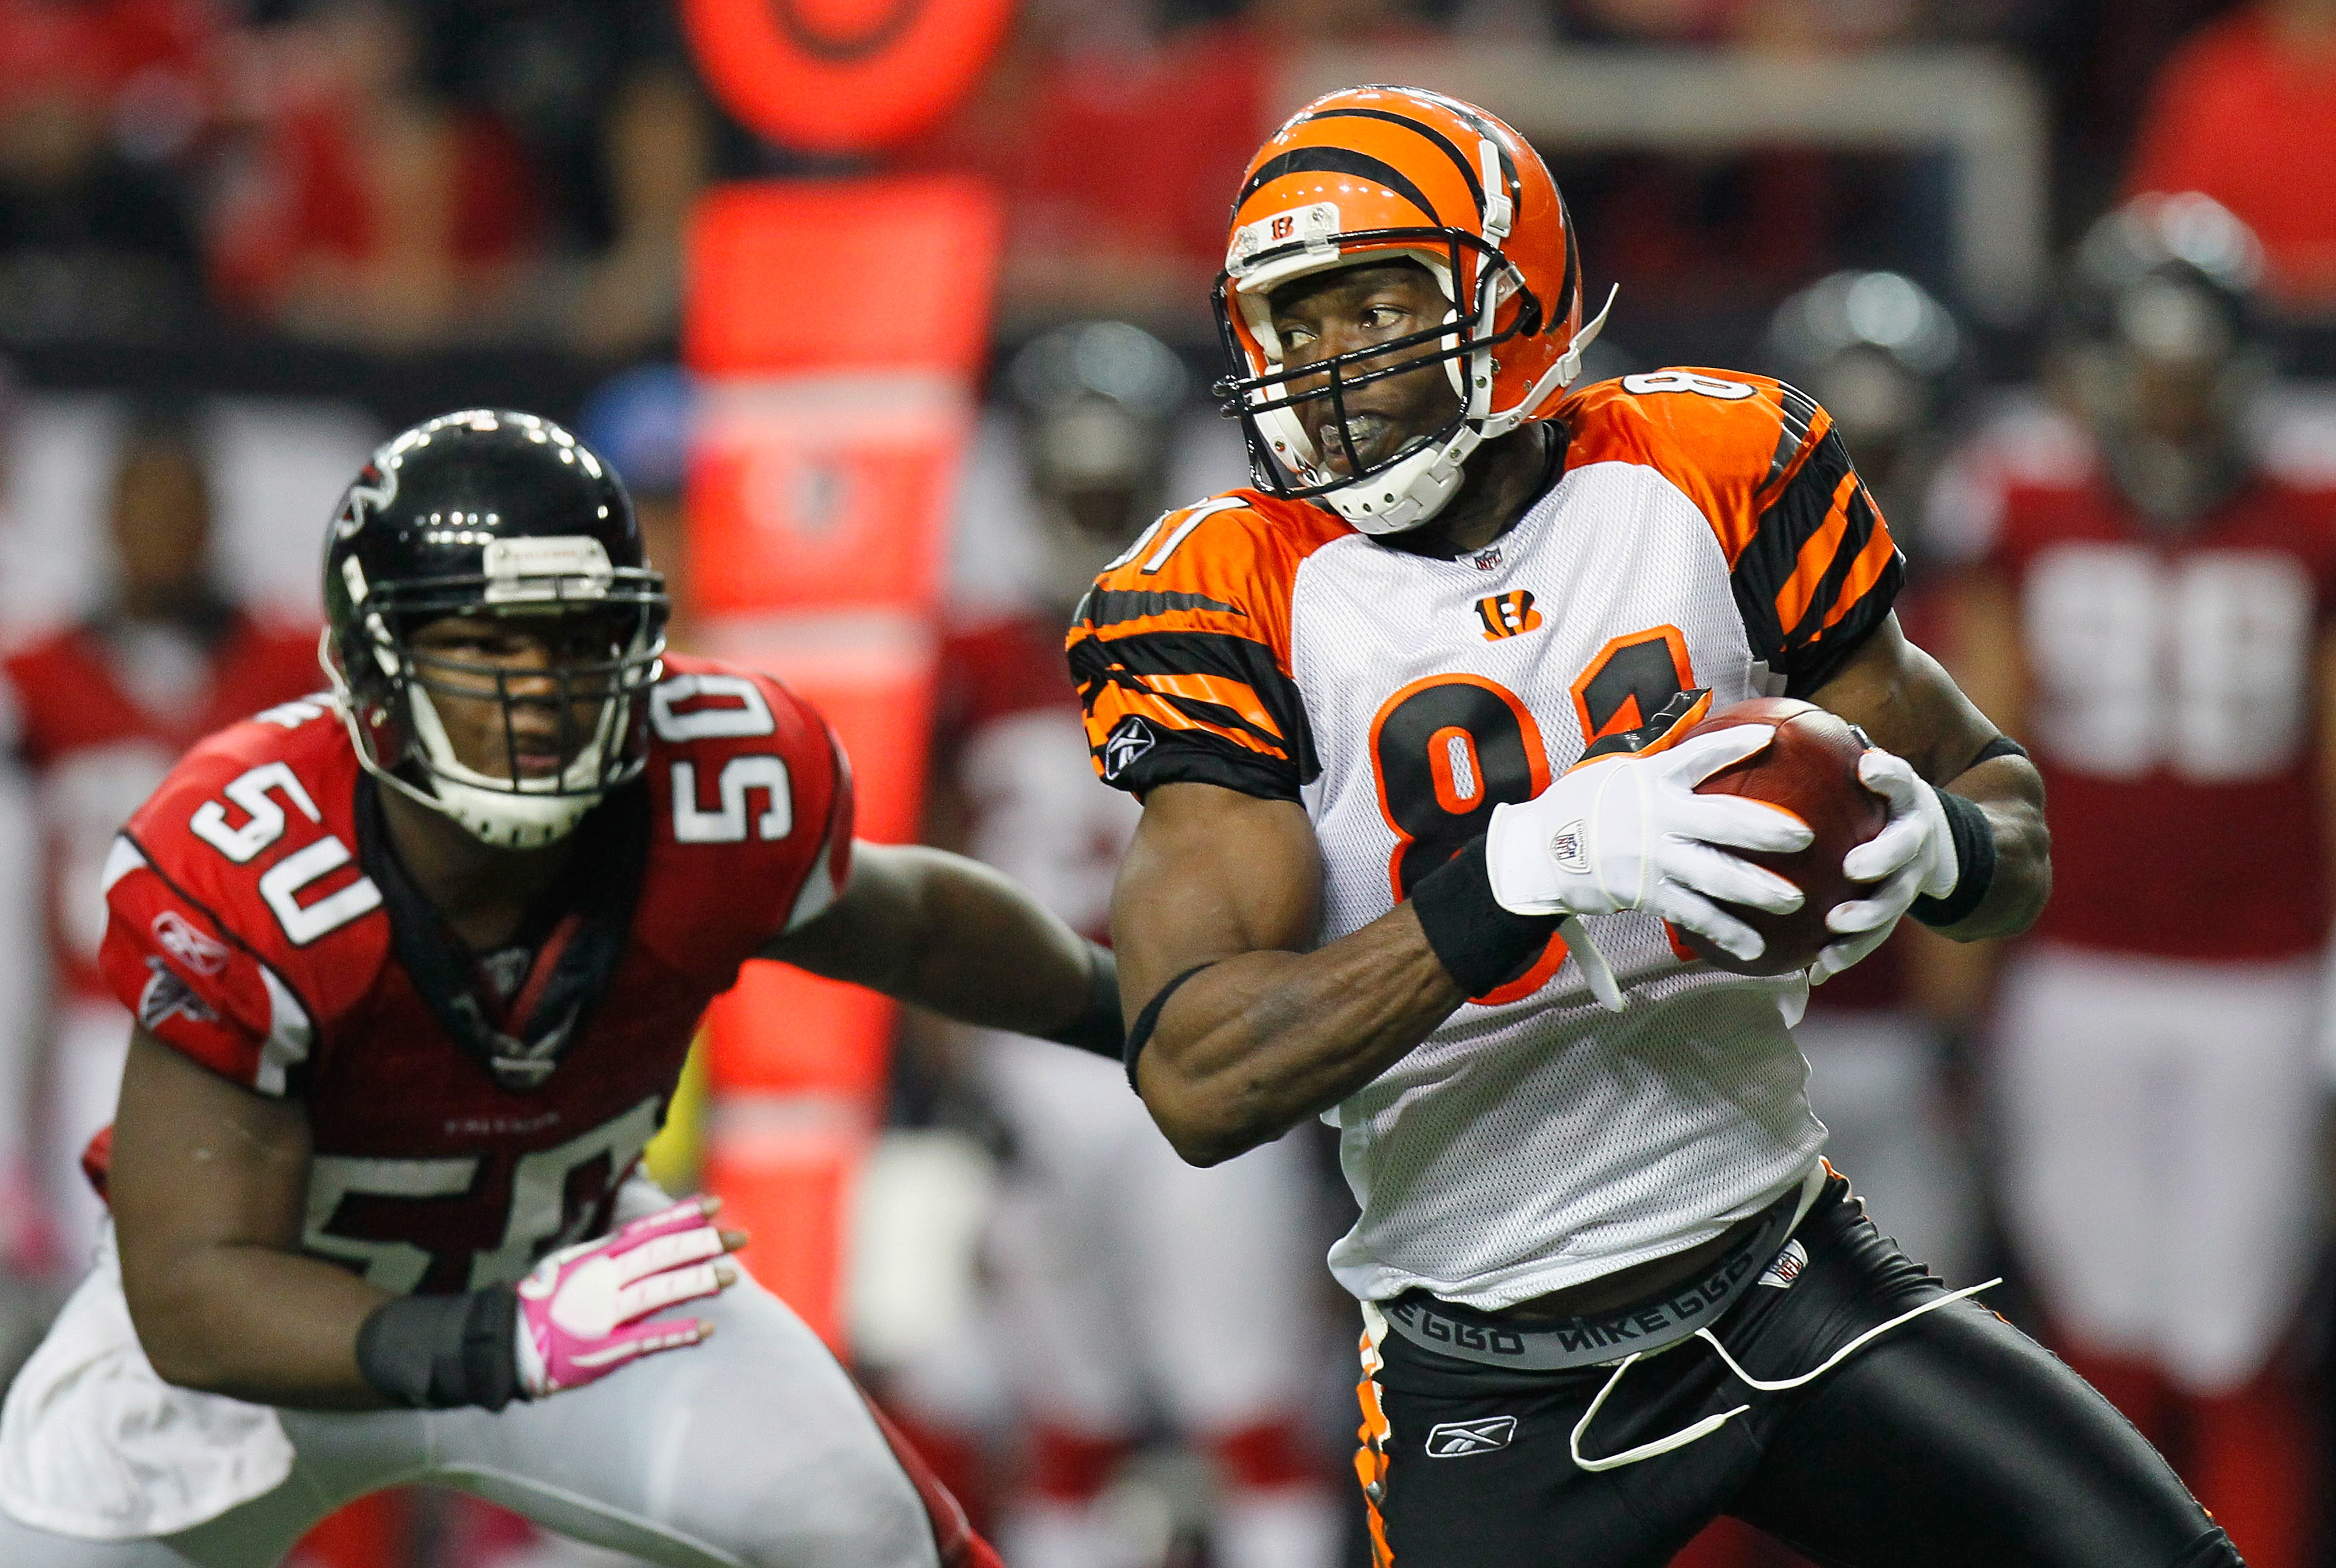 ATLANTA - OCTOBER 24:  Terrell Owens #81 of the Cincinnati Bengals pulls in this reception against Curtis Lofton #50 of the Atlanta Falcons at Georgia Dome on October 24, 2010 in Atlanta, Georgia.  (Photo by Kevin C. Cox/Getty Images)